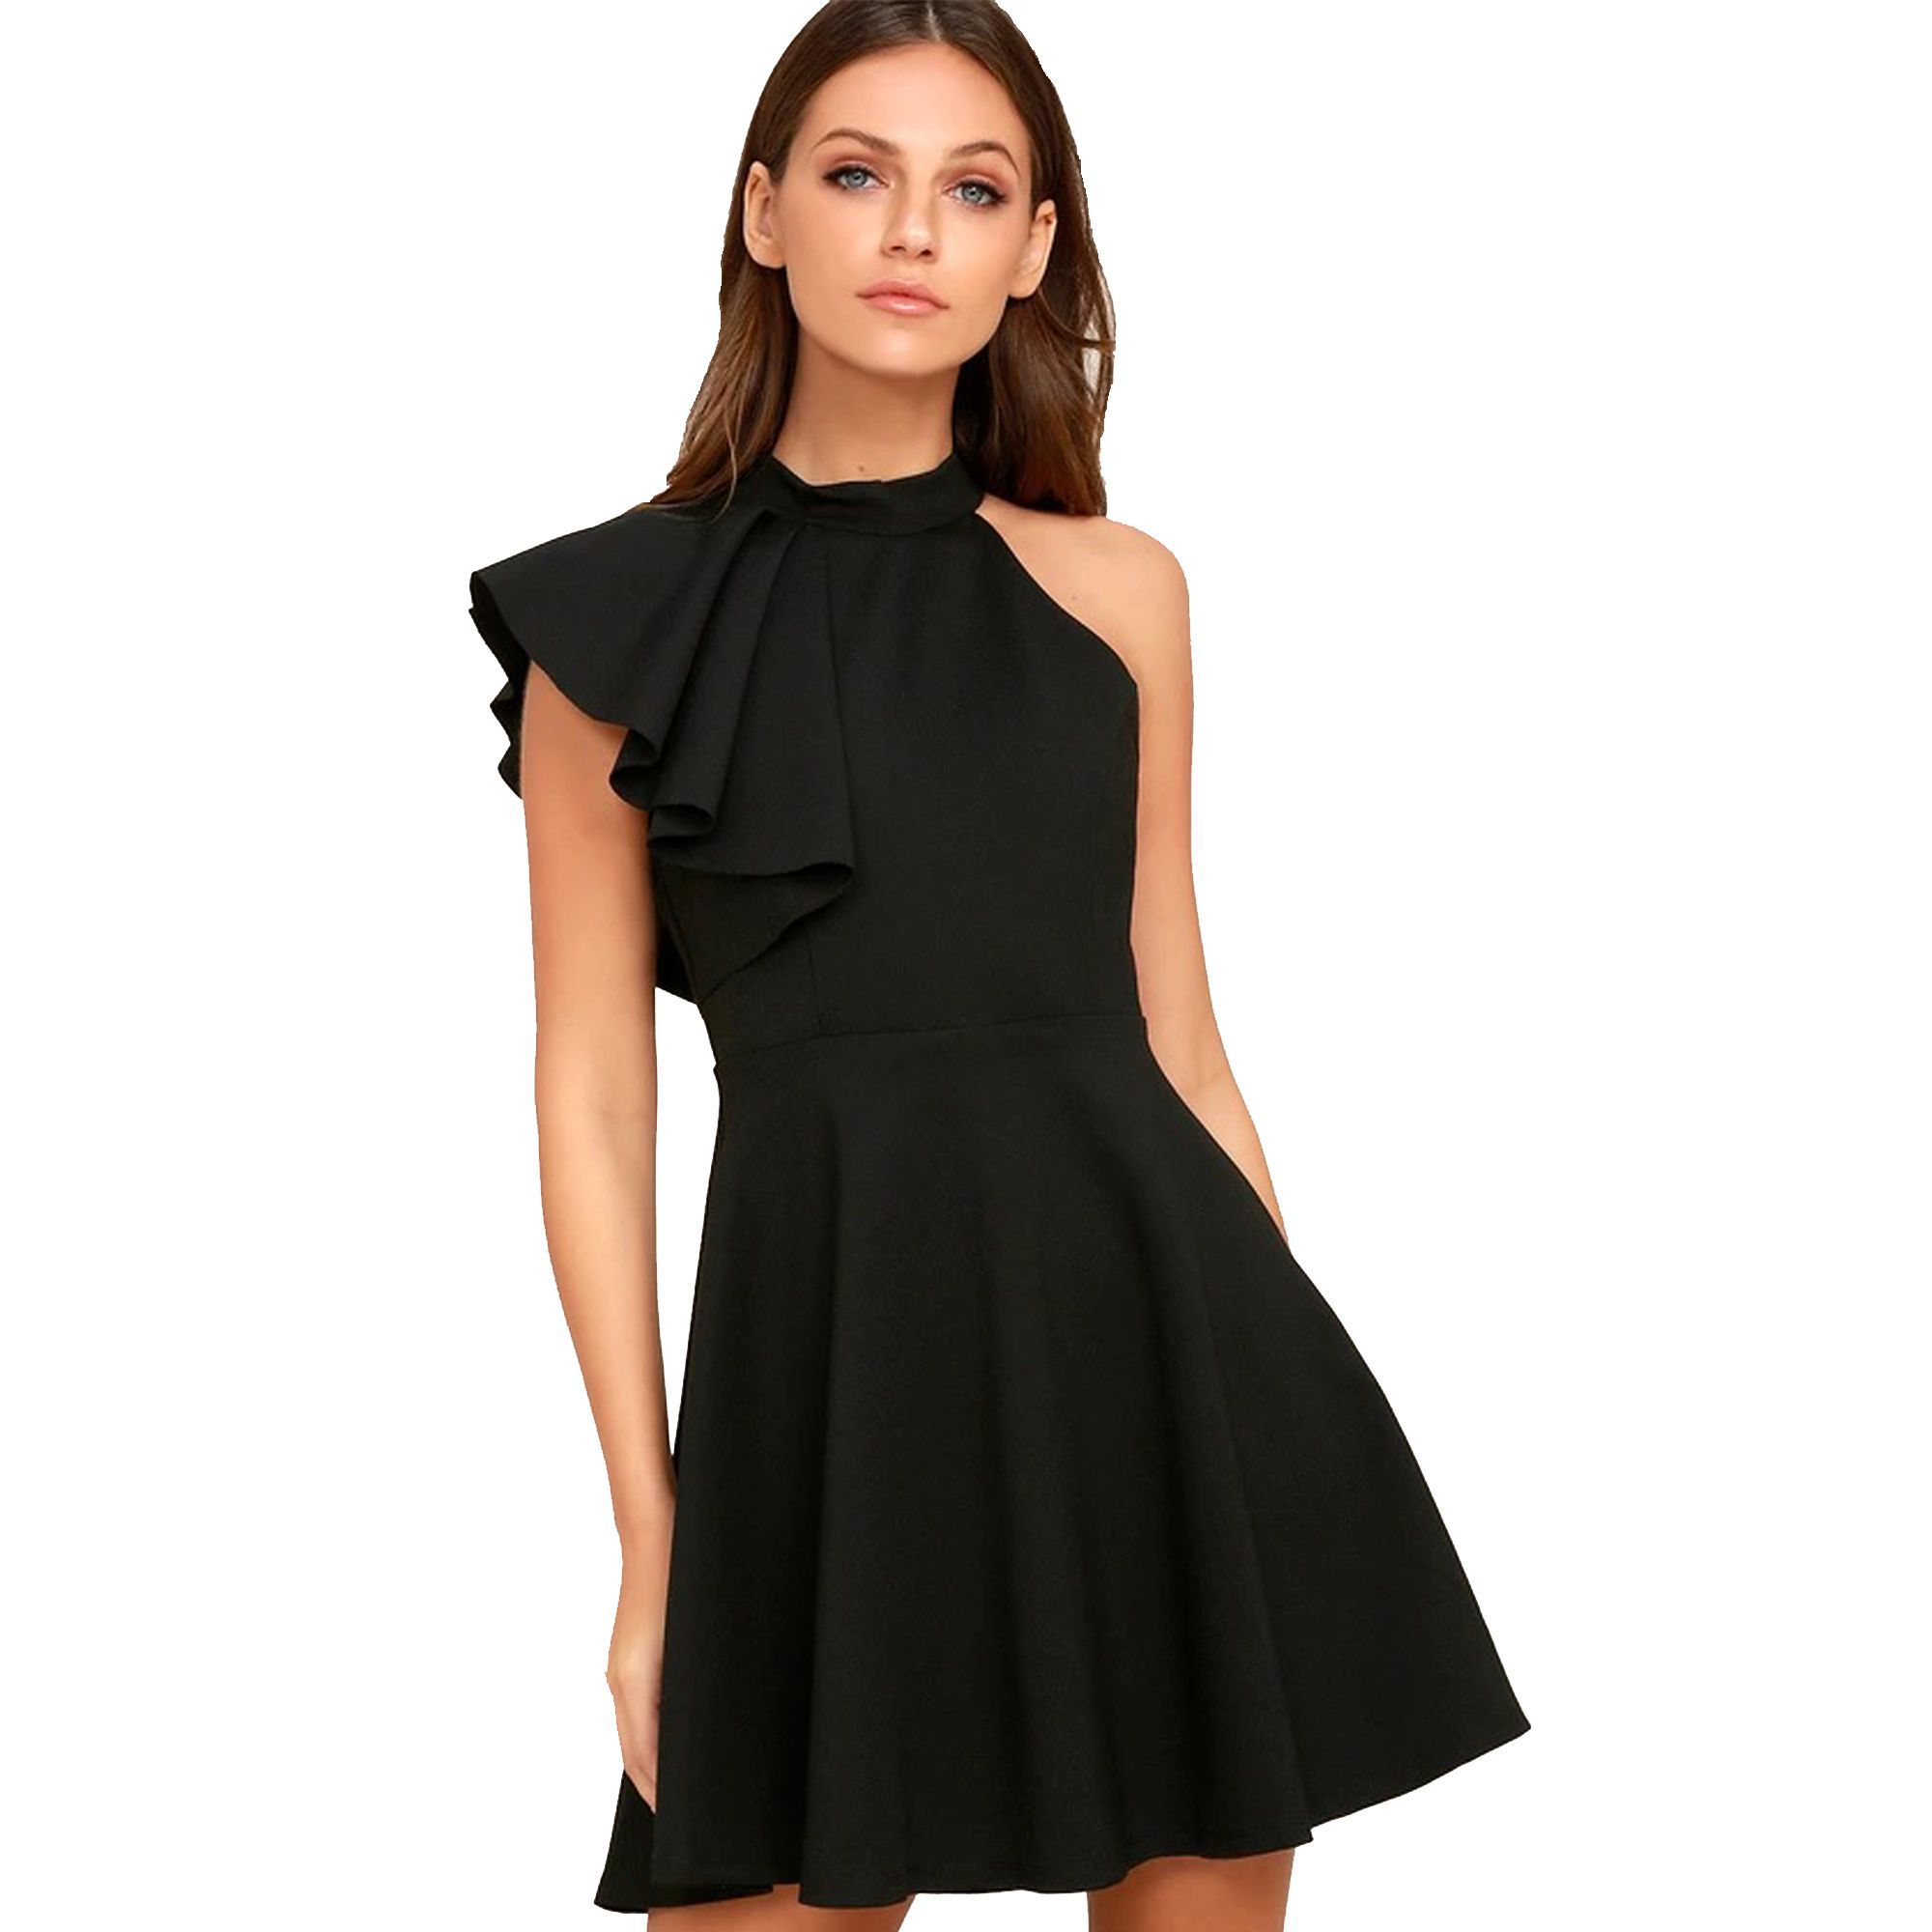 476040d9d Addyvero Cotton Lycra Black Dresses - Buy Addyvero Cotton Lycra Black  Dresses Online at Best Prices in India on Snapdeal